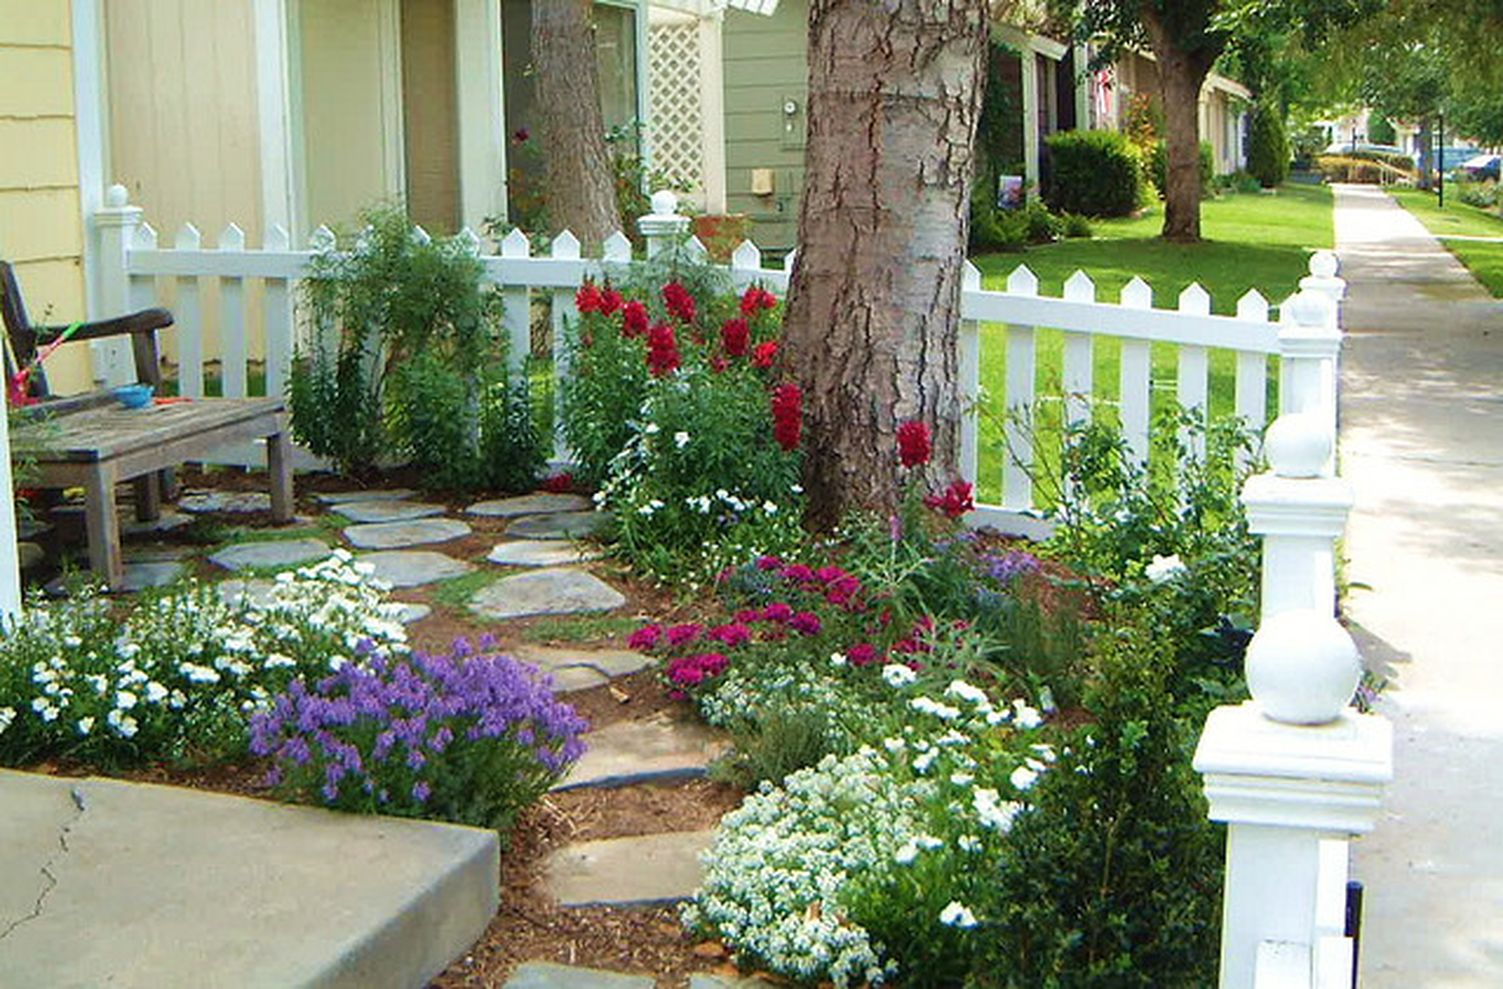 Cute and simple tiny patio garden ideas 70 - 87 Cute And Simple Tiny Patio Garden Ideas - Round Decor